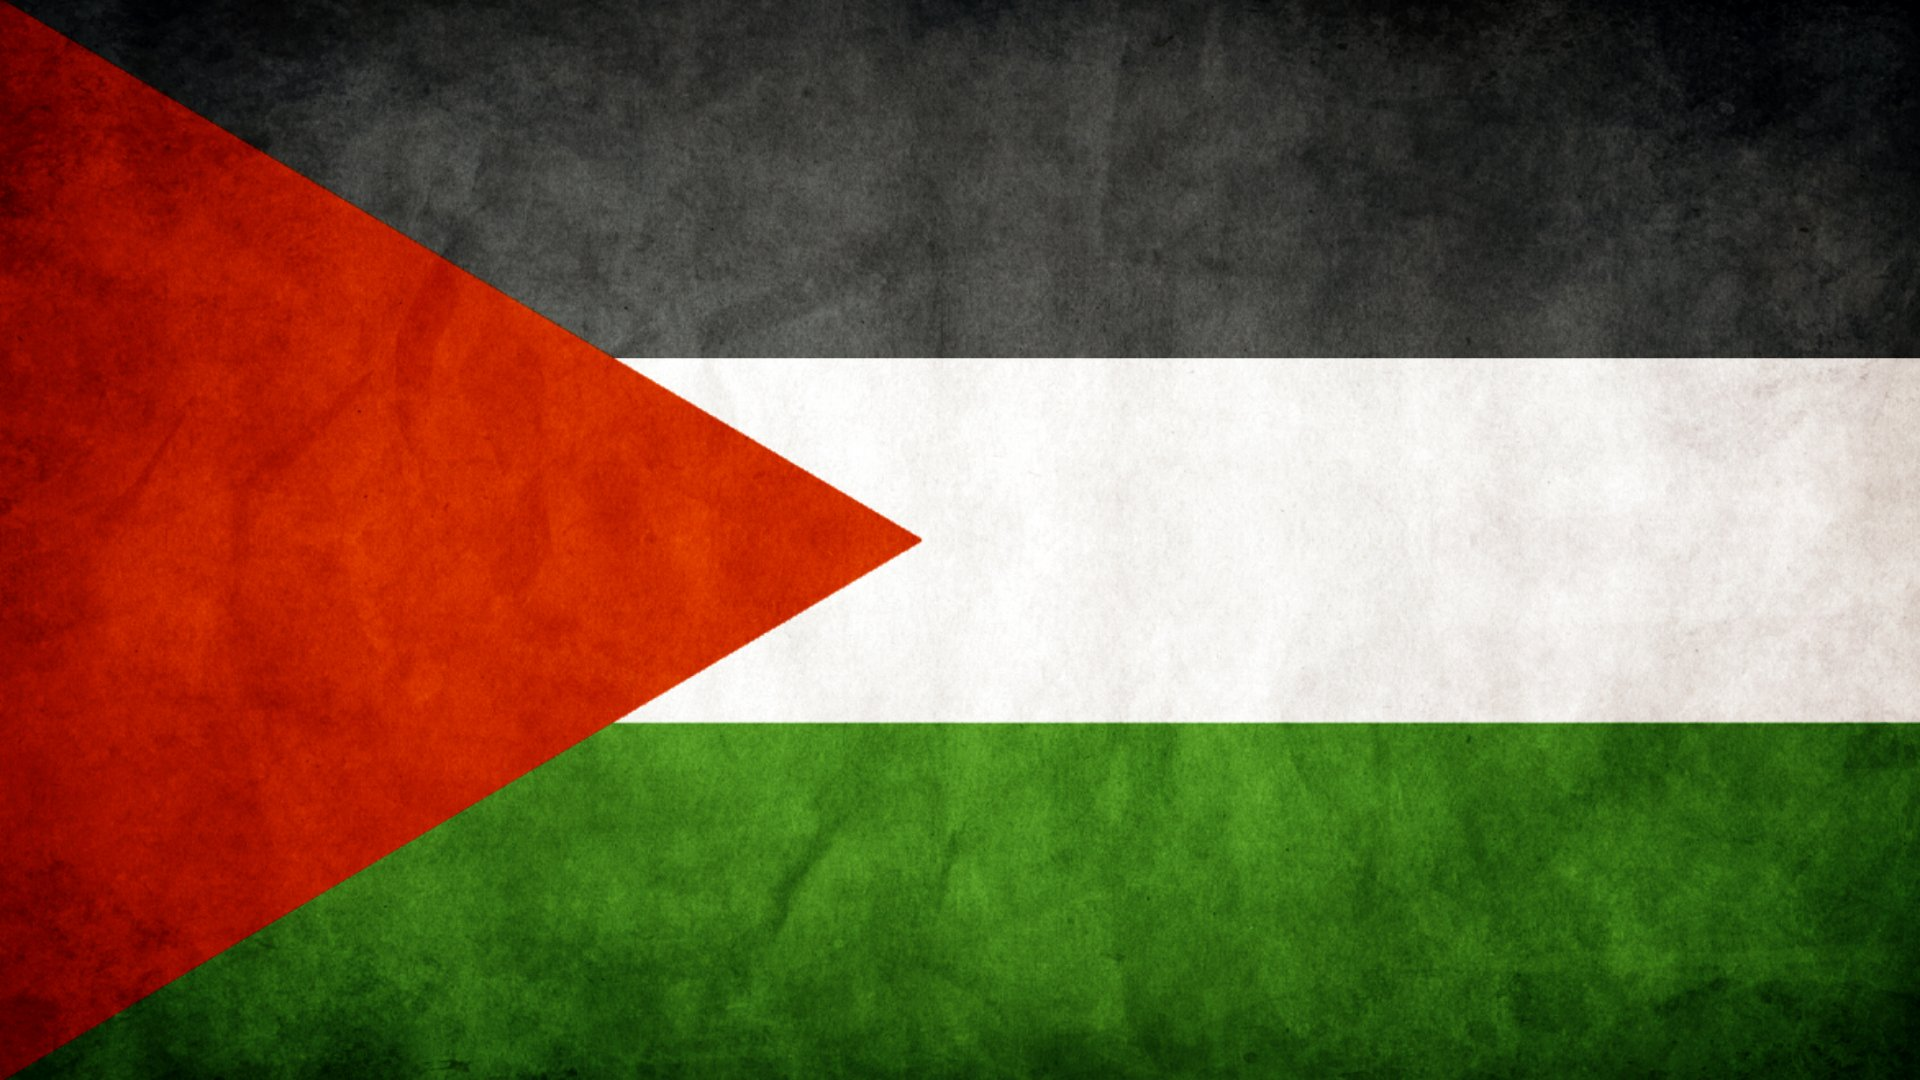 File:Flag of Palestine.svg Wikimedia Commons